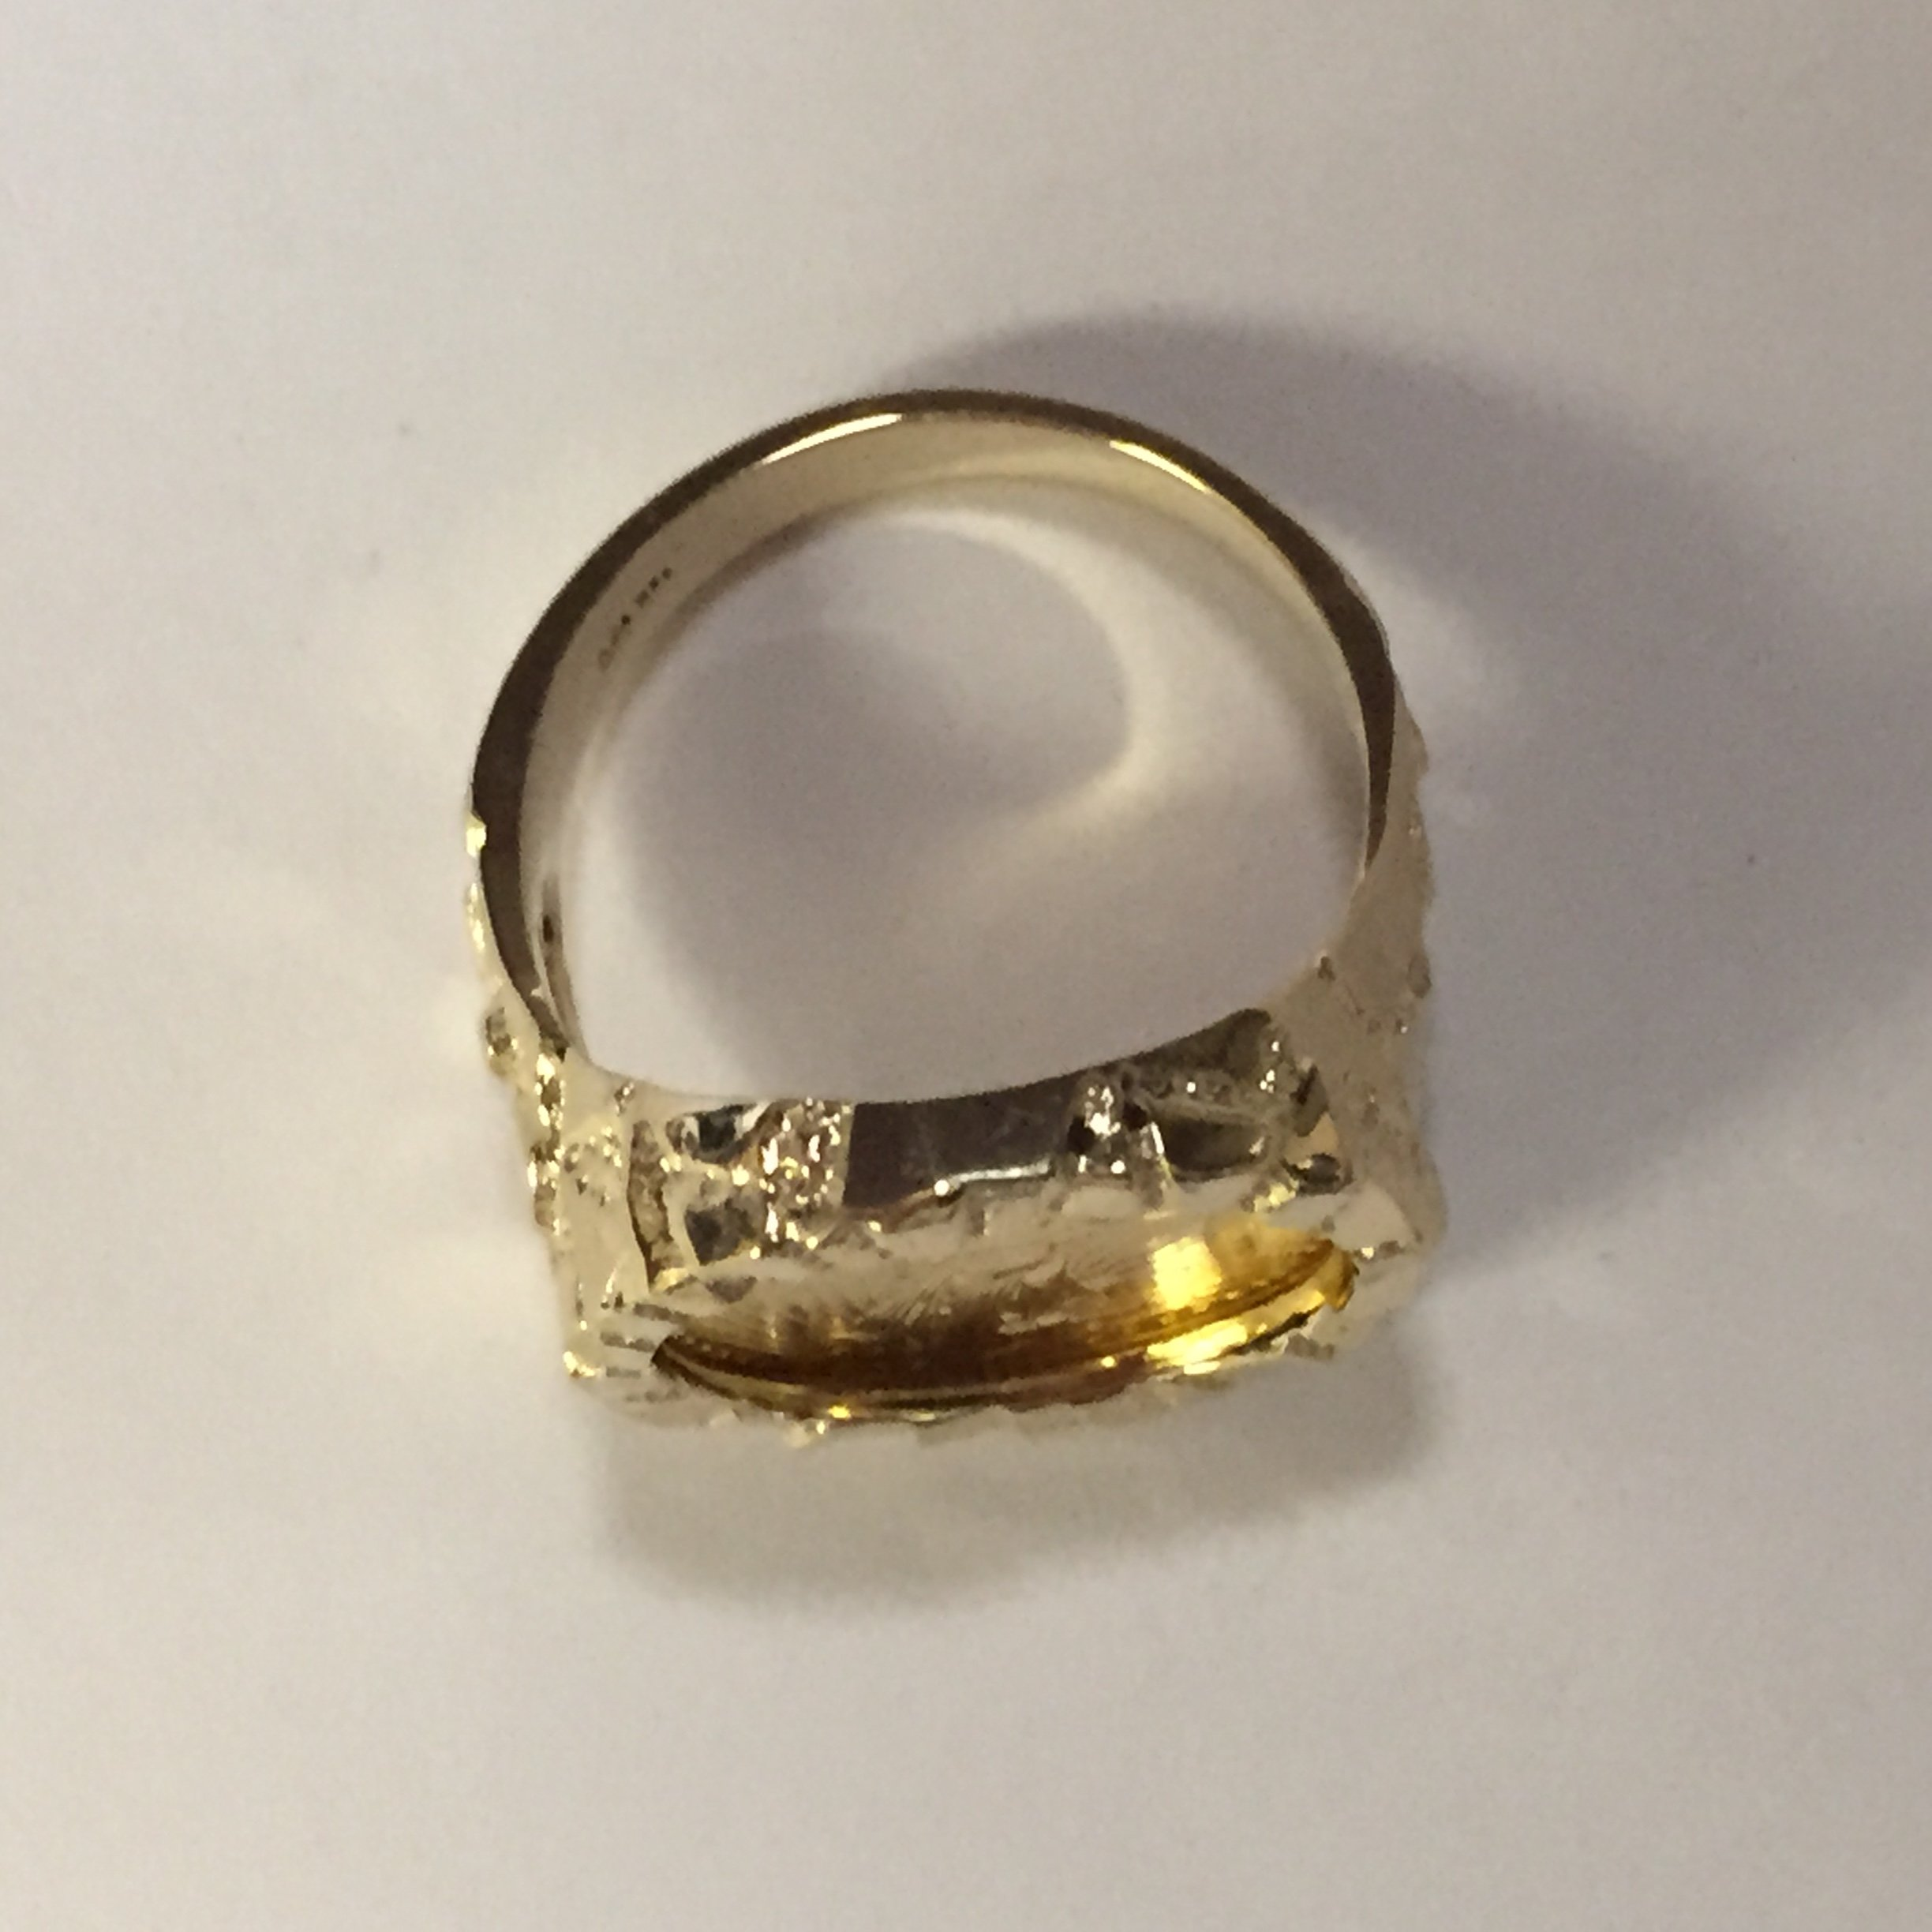 22K-Fine Gold 1/10 Oz Us American Eagle Coin In -14K Nugget Ring 1510 (Random Year Coin) by TEX (Image #2)